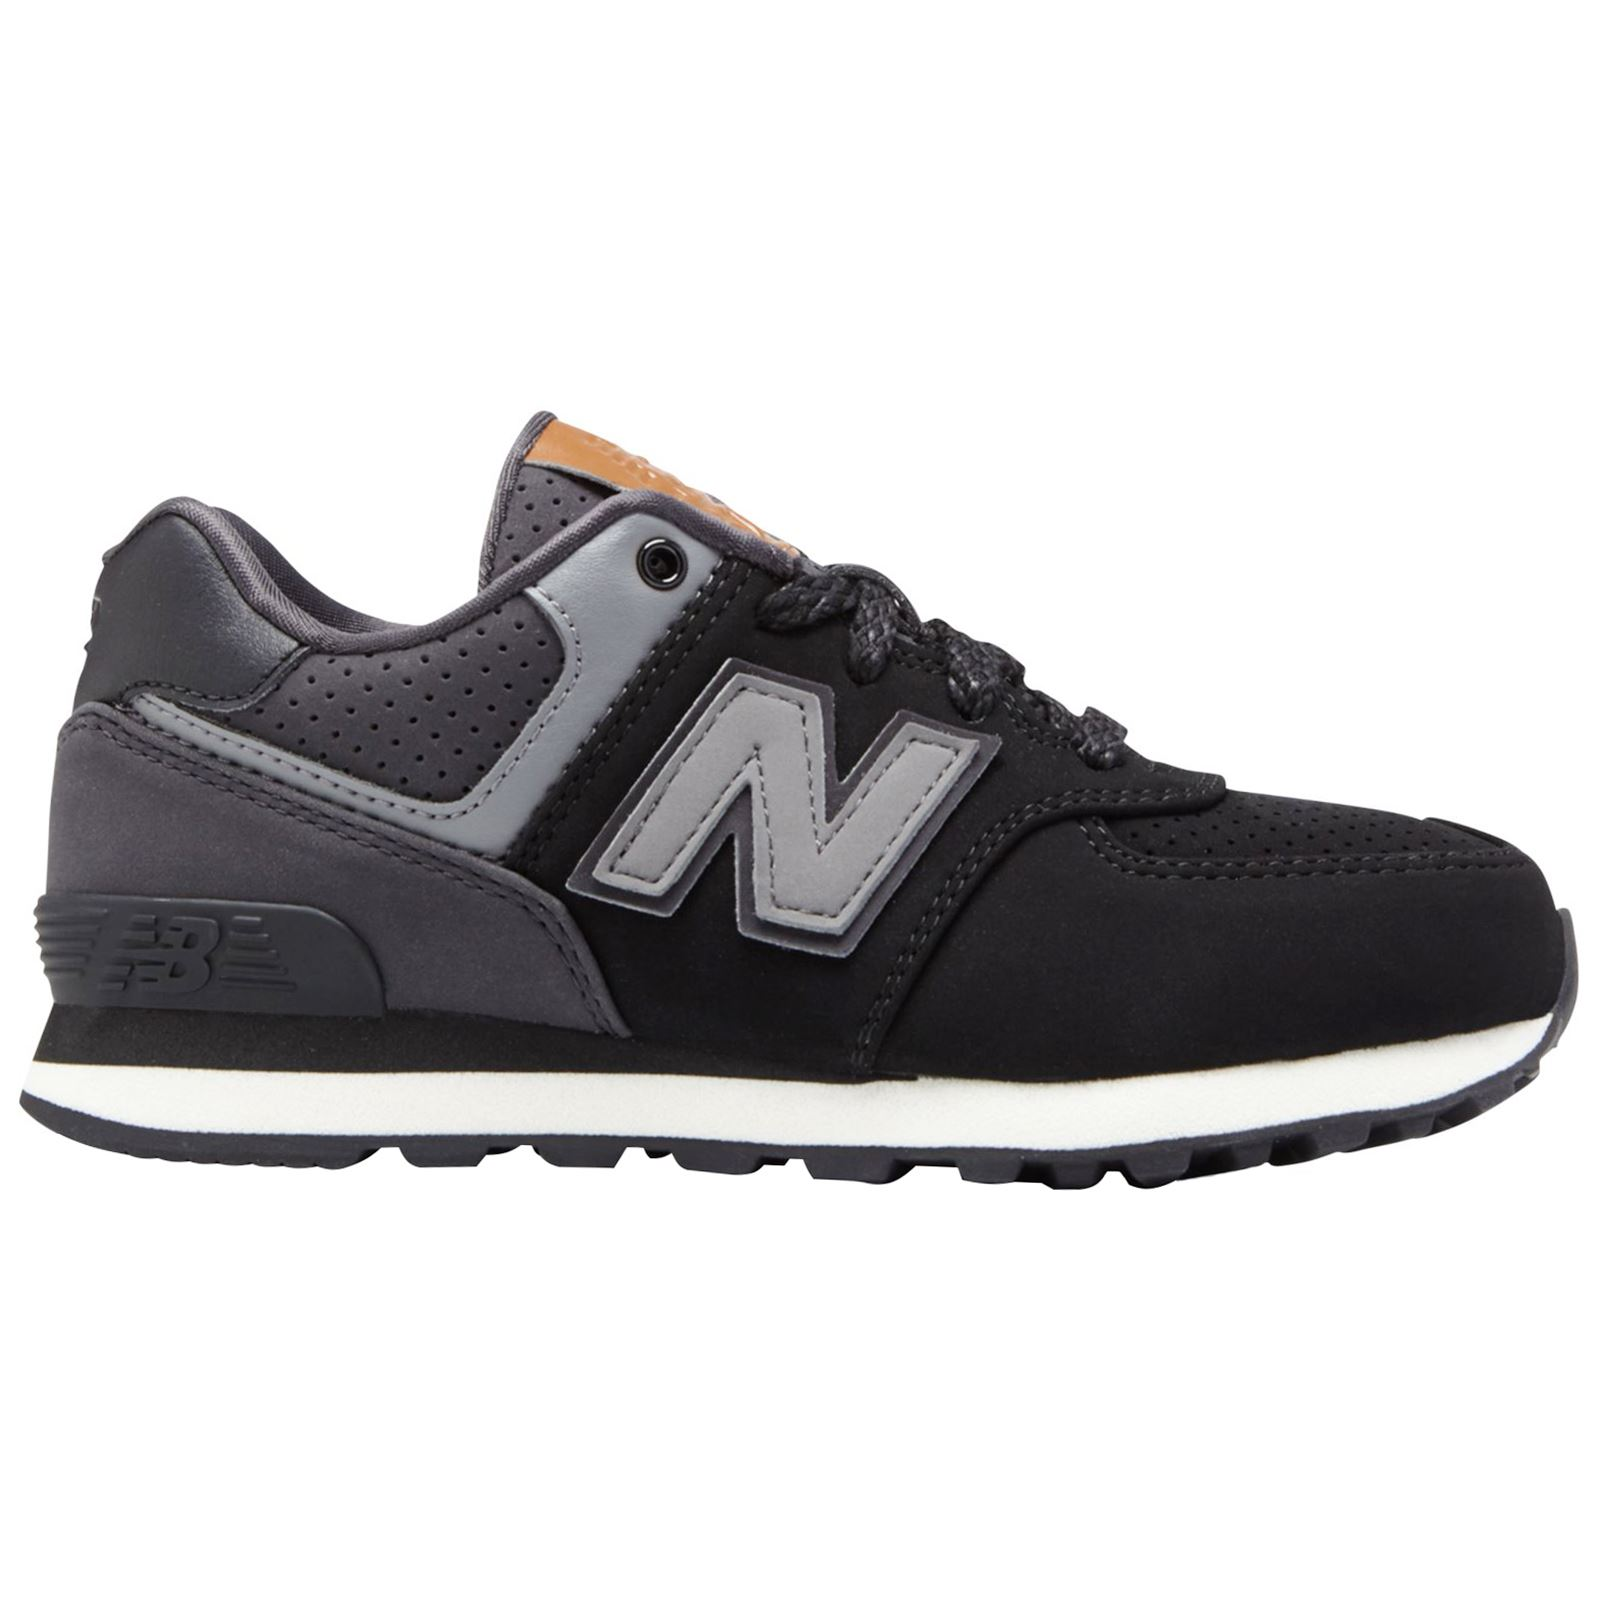 New Low Balance Youth Up Sneakers Classic Grey 574 Top Black Lace WDH2IE9Y